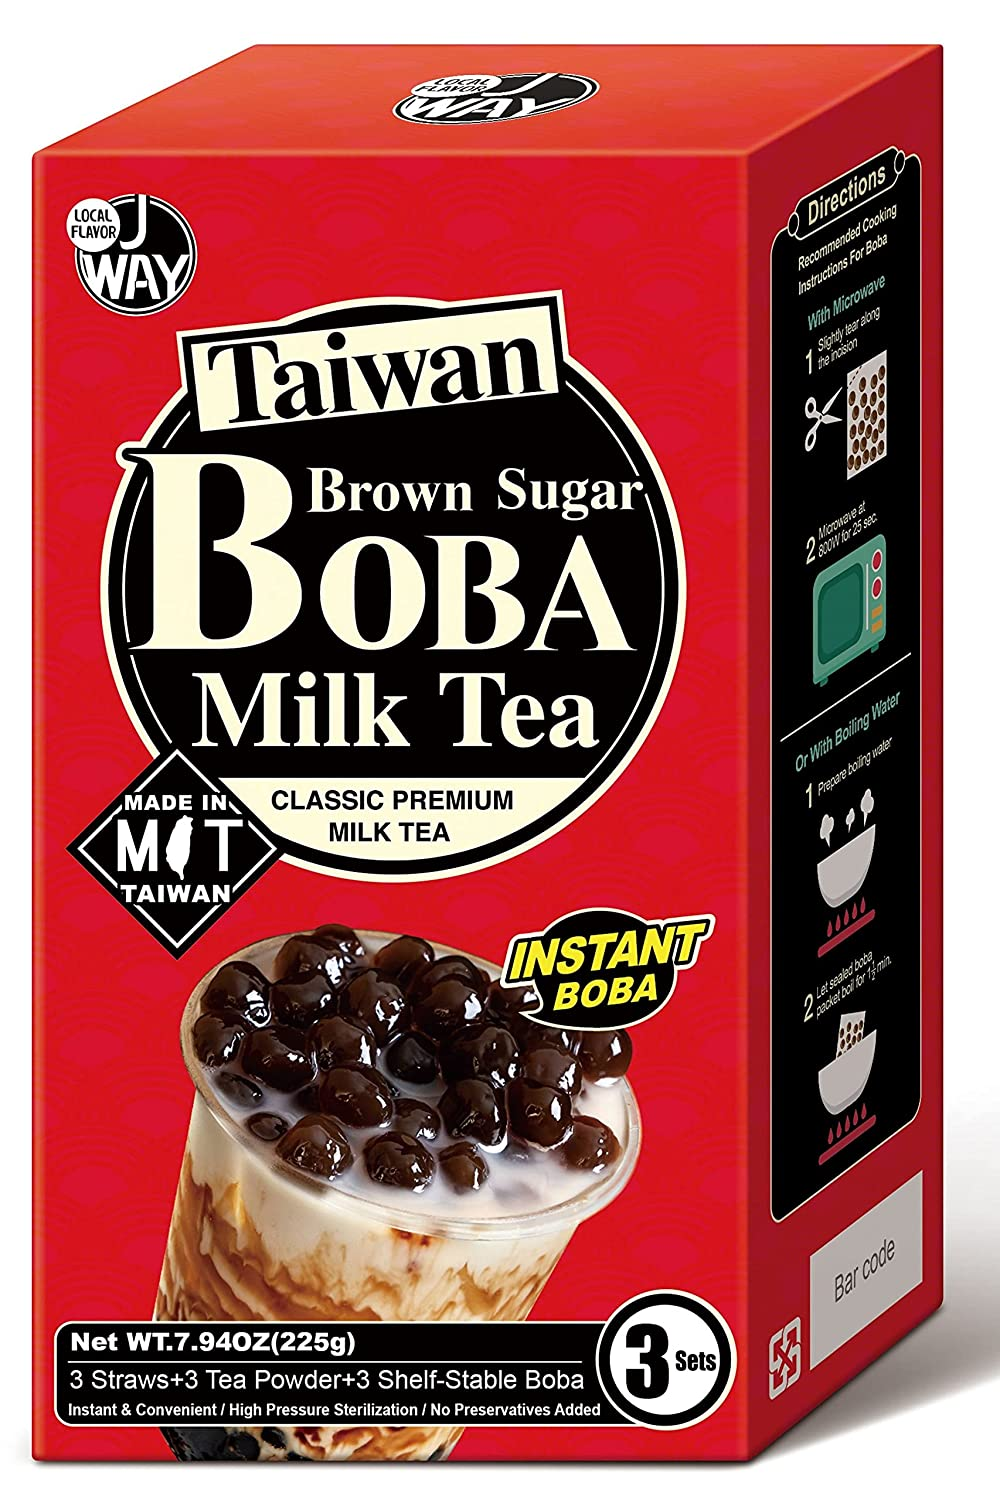 J WAY Instant Max 76% OFF Boba Bubble Pearl Trust Brow Authentic Kit with Milk Tea